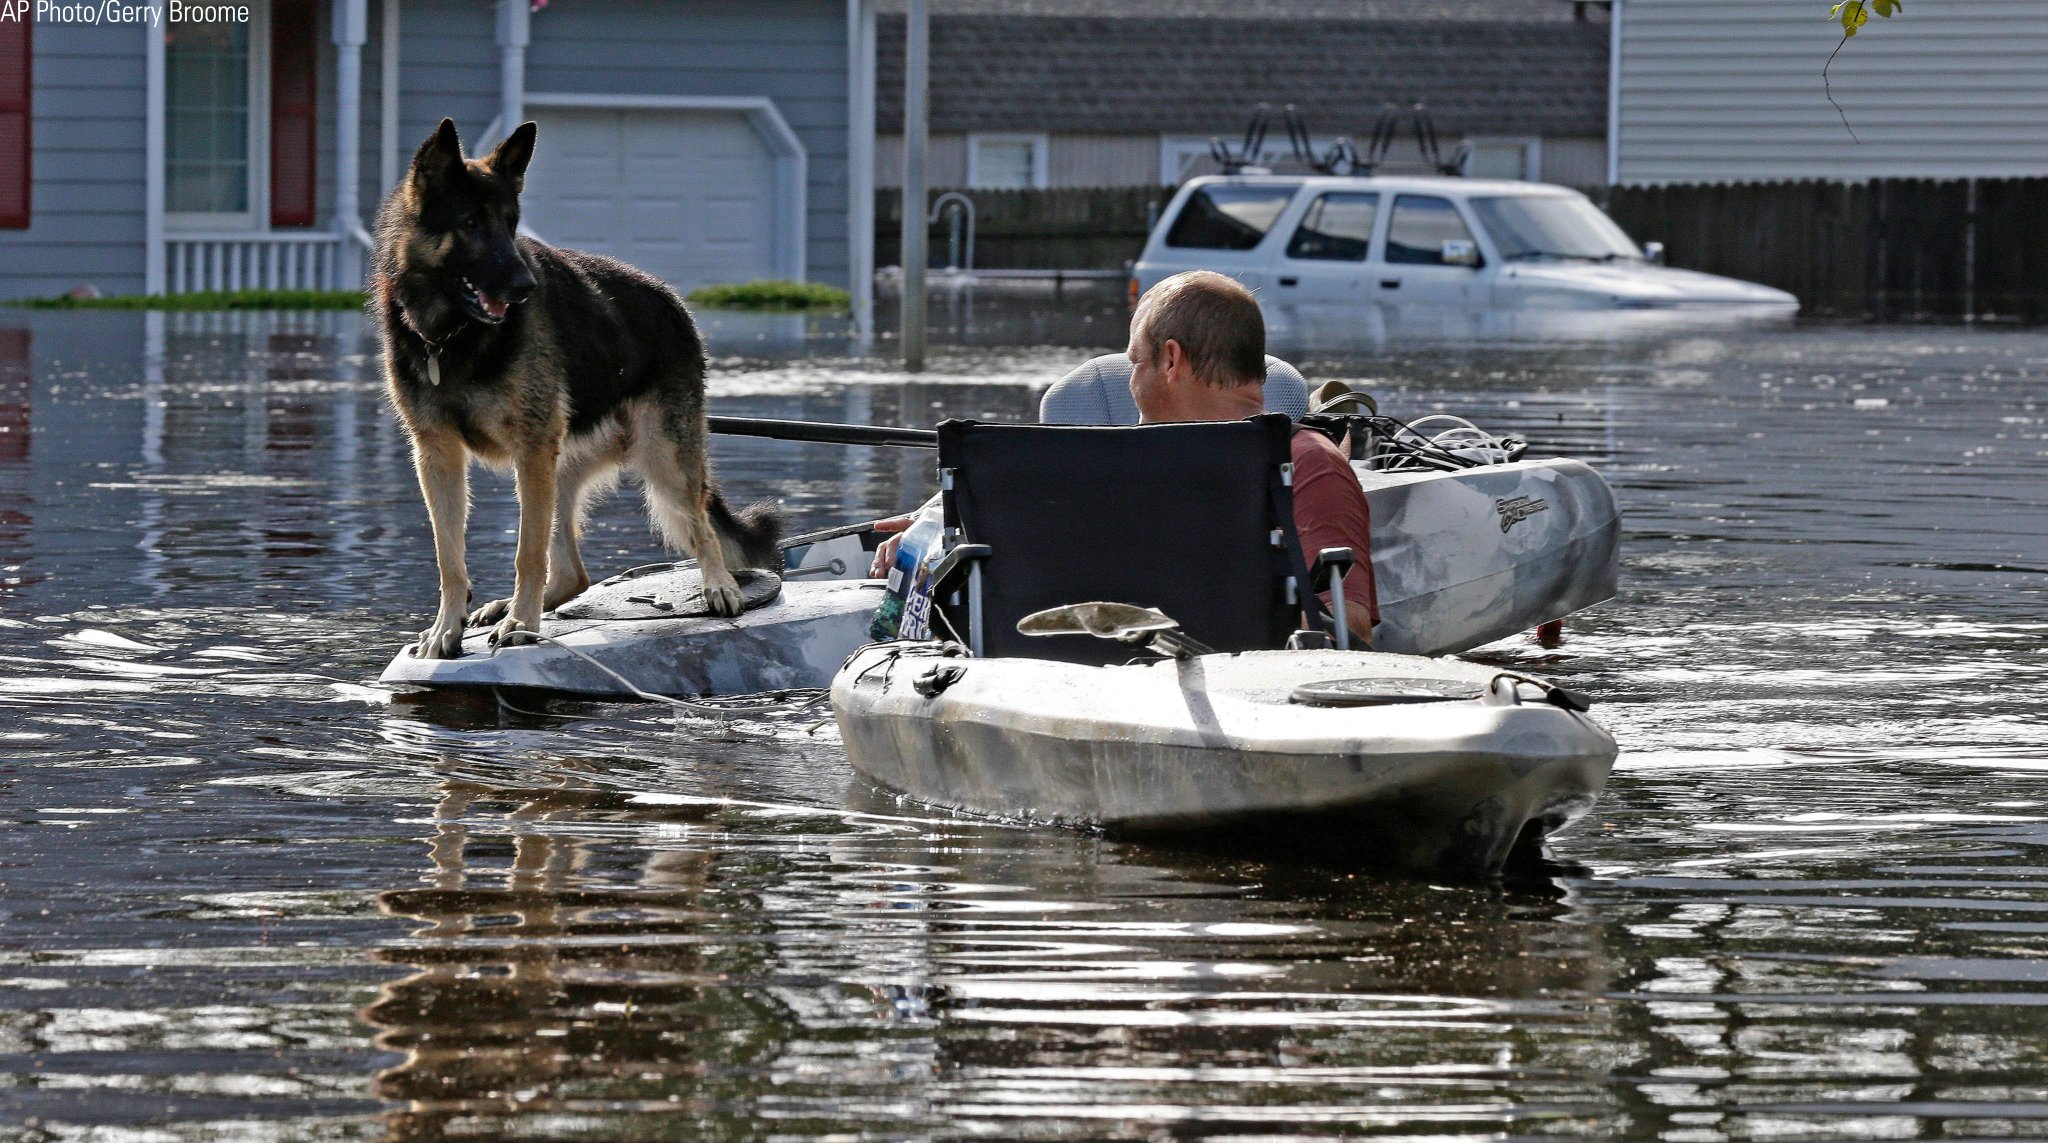 A man tries to get his dog out of a flooded neighborhood in Lumberton, N.C. https://t.co/RuixlNpVp3